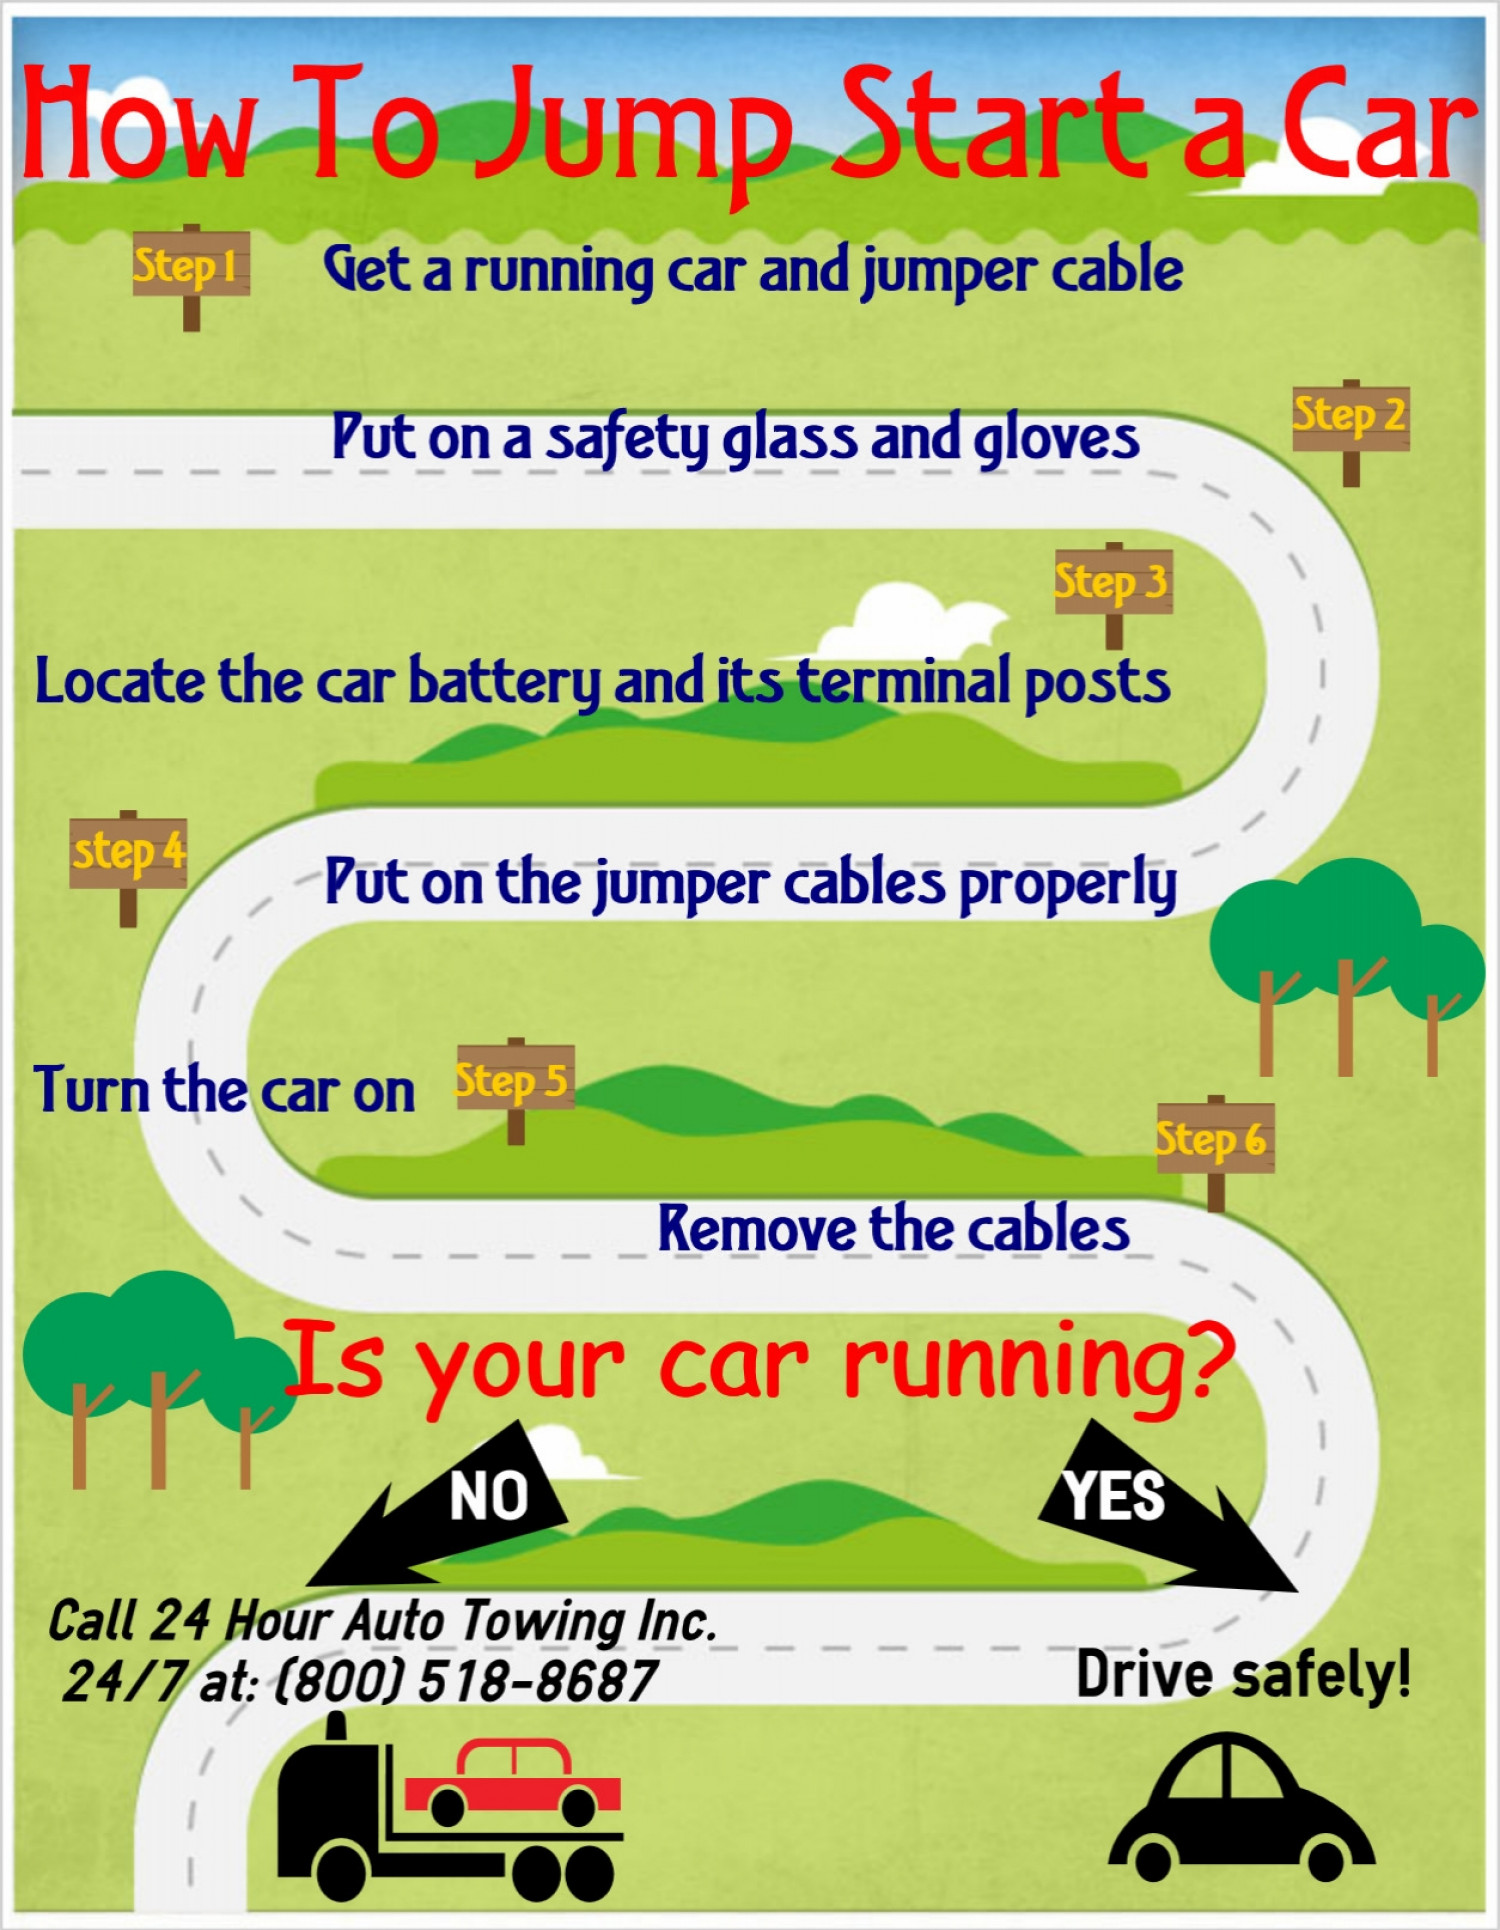 How to Jump Start? Infographic